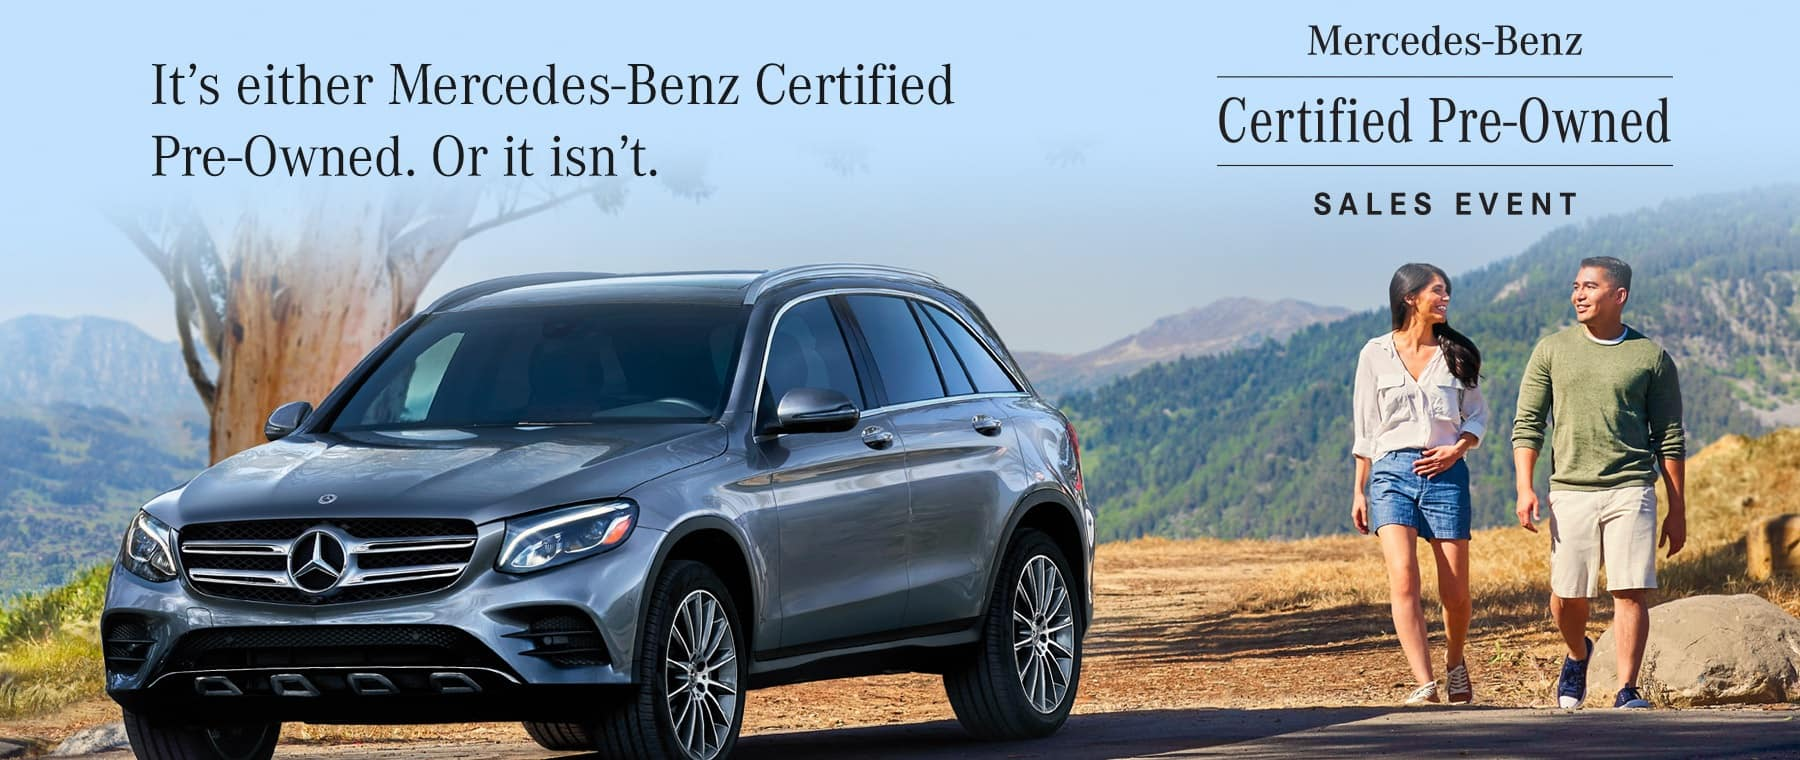 Mercedes Benz Of Smithtown Mercedes Benz Dealer In St James Ny